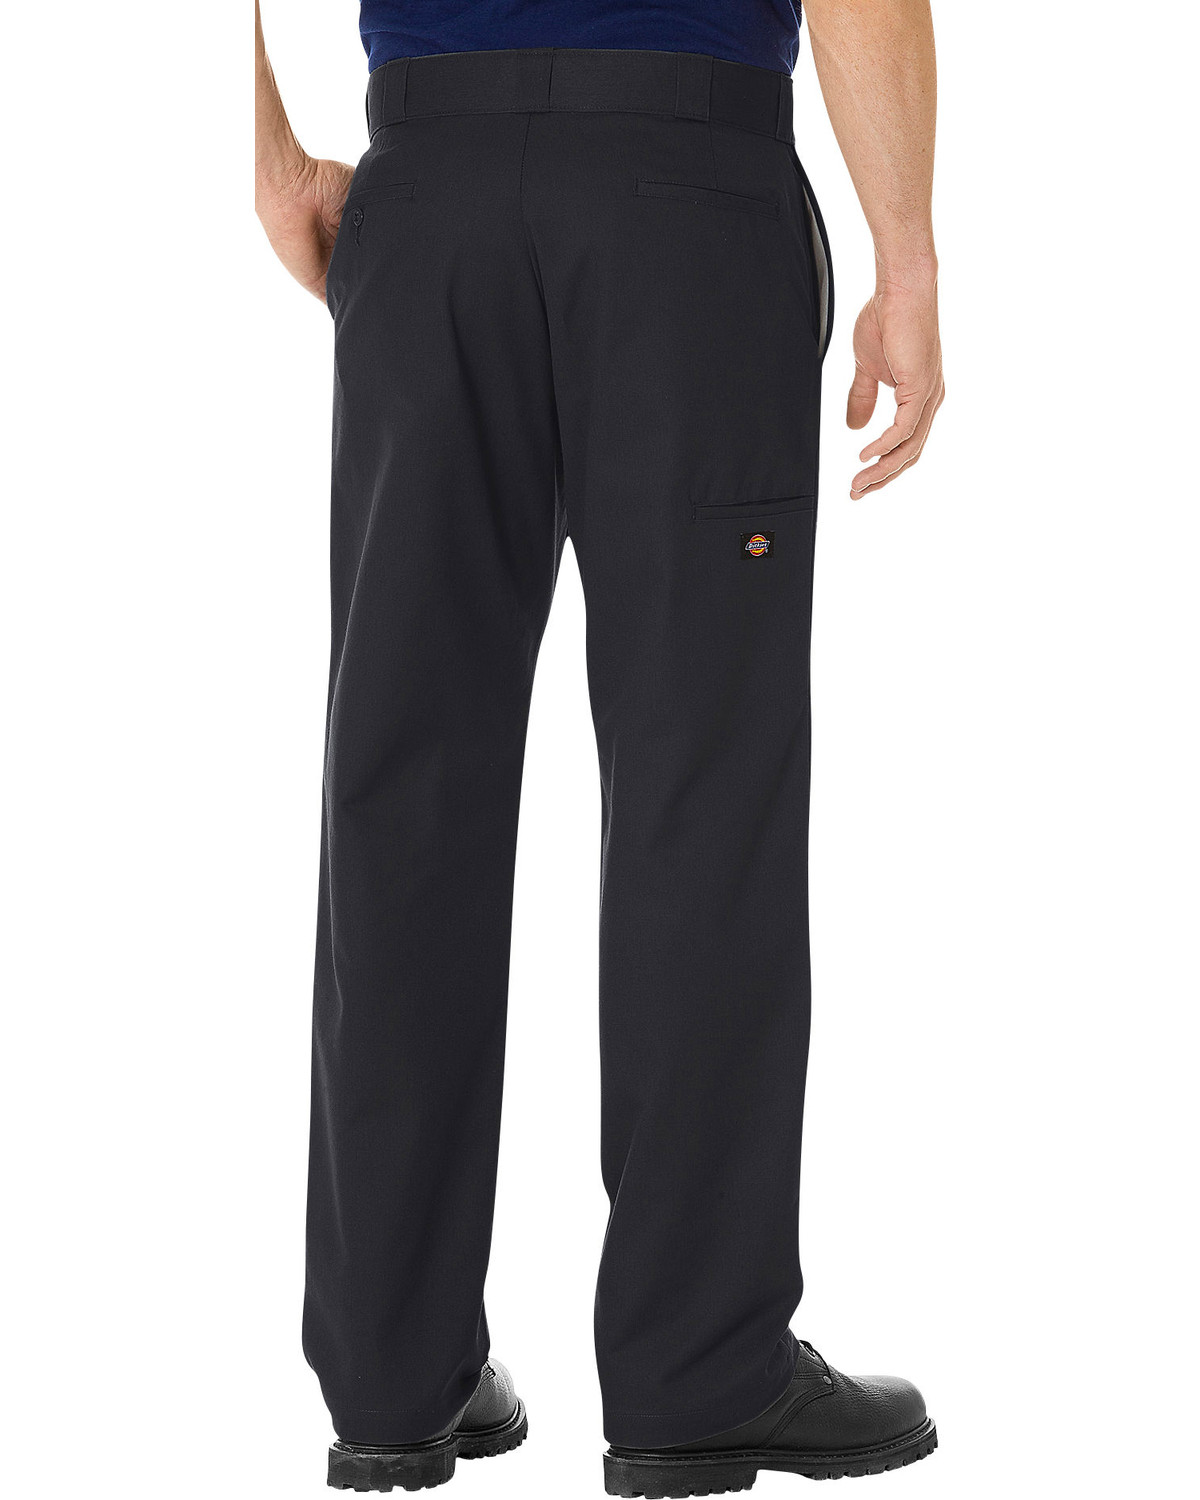 e906647e Zoomed Image Dickies Men's FLEX Regular Fit Straight Leg Double Knee Work  Pants, Black, hi-